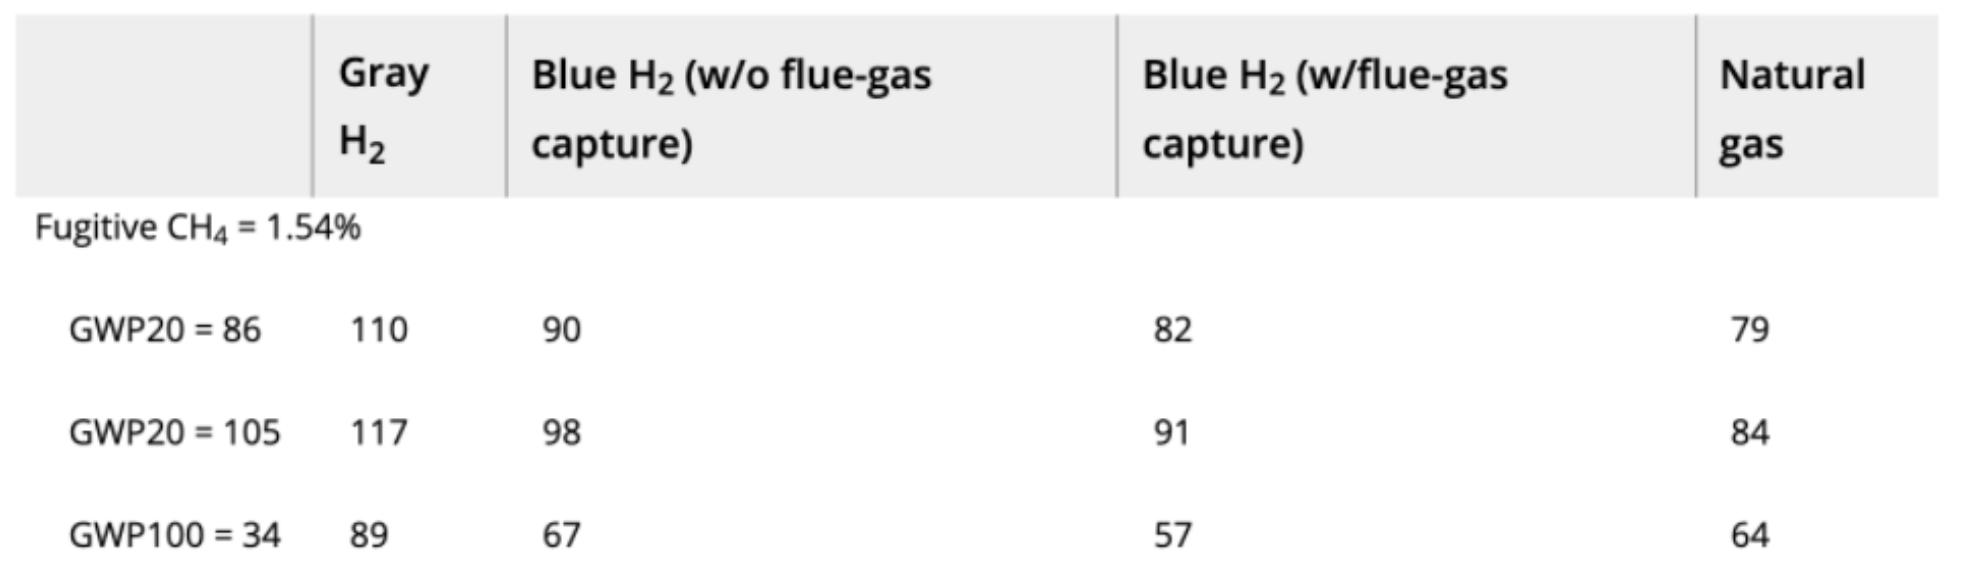 Subset of Table 2 from Howarth and Jacobson paper focusing solely on equivalent upstream emissions